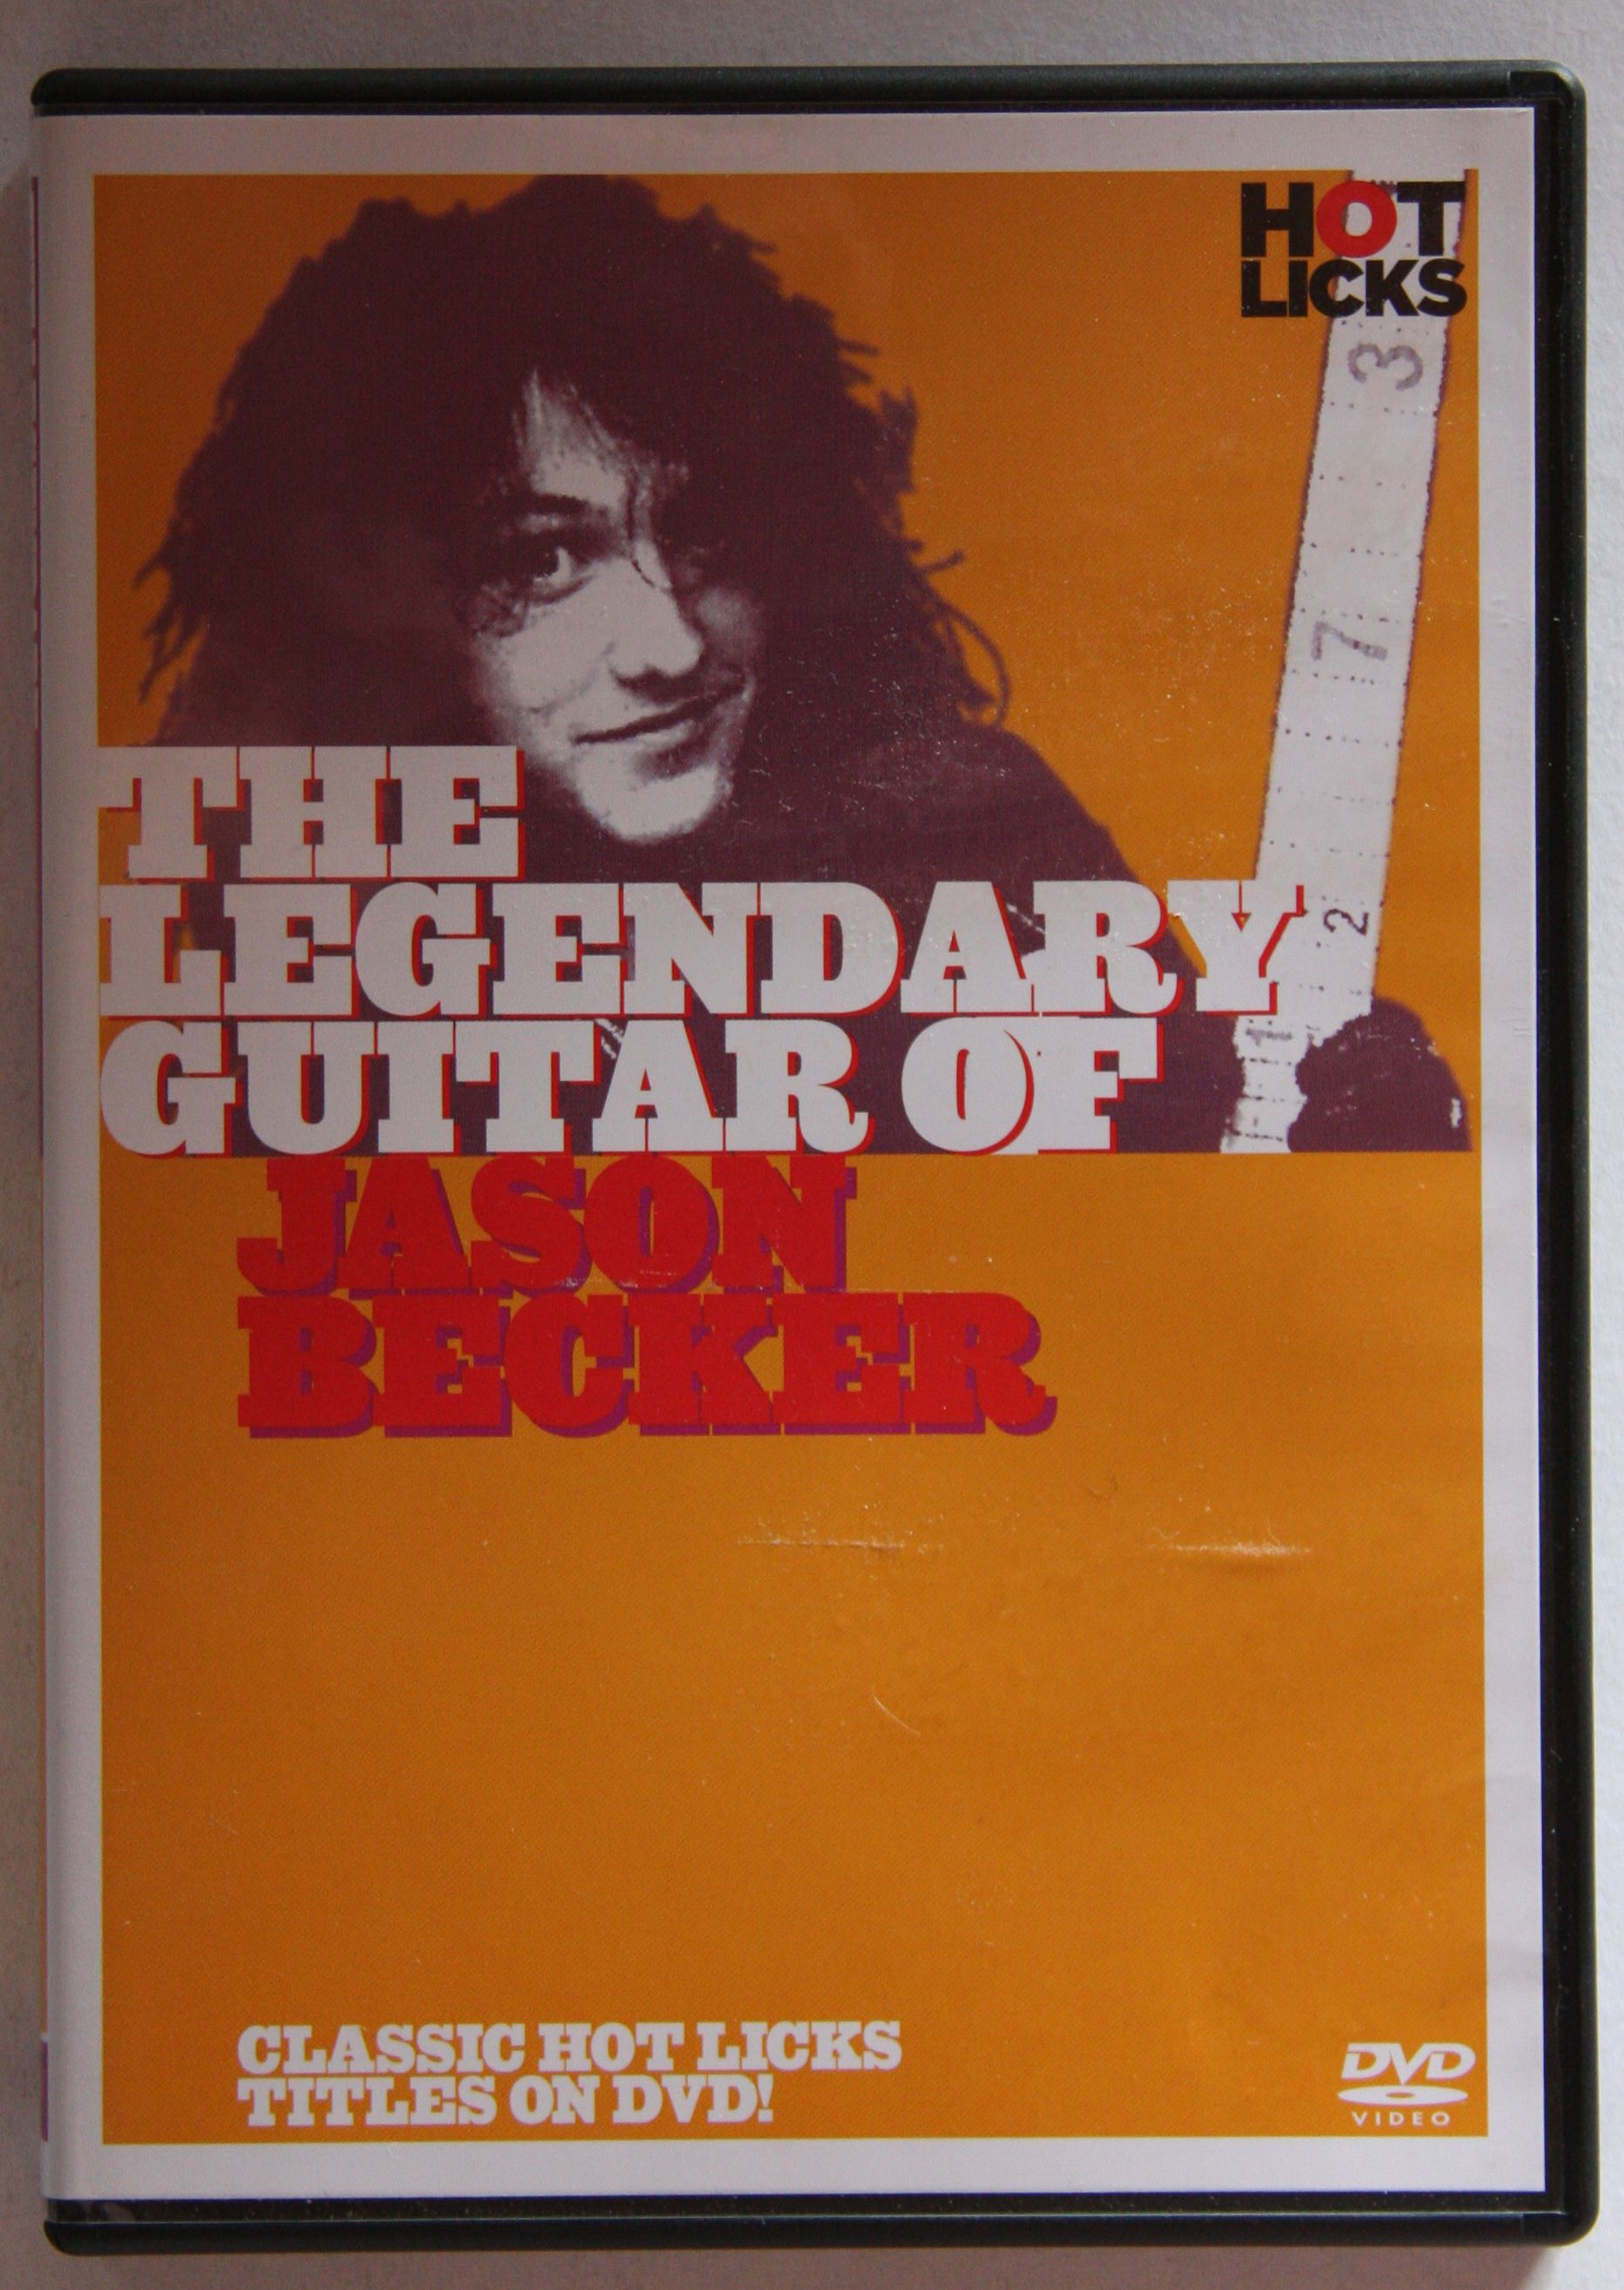 The Legendary Guitar Of